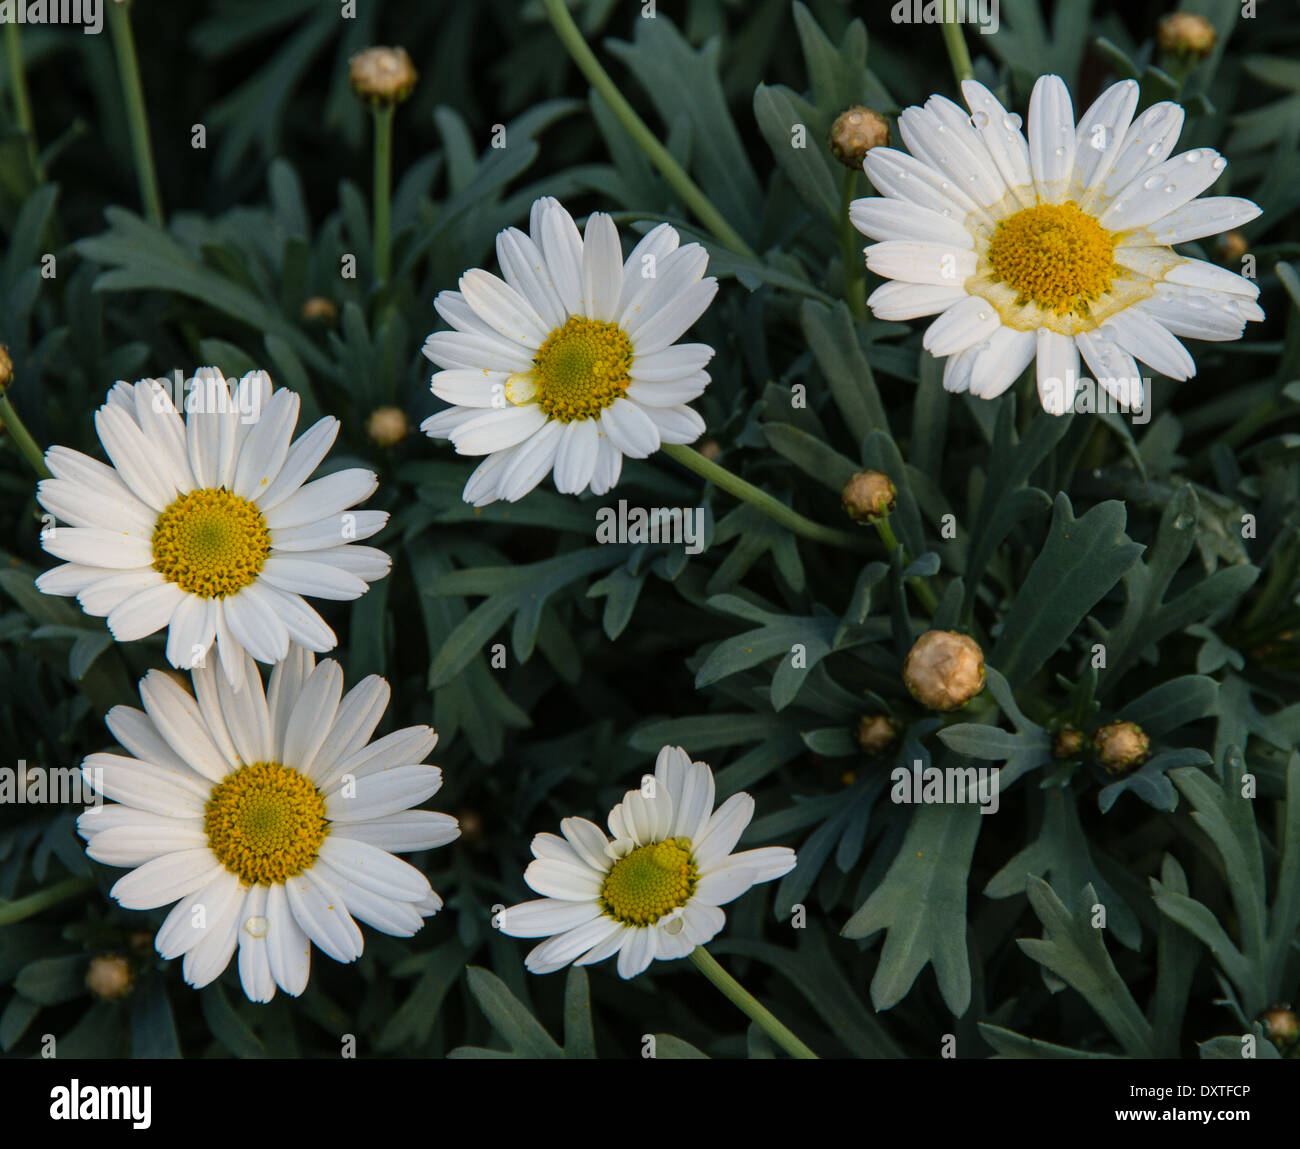 Background Of White Flowers And Daisies From The Florist For Sale Stock Photo Alamy